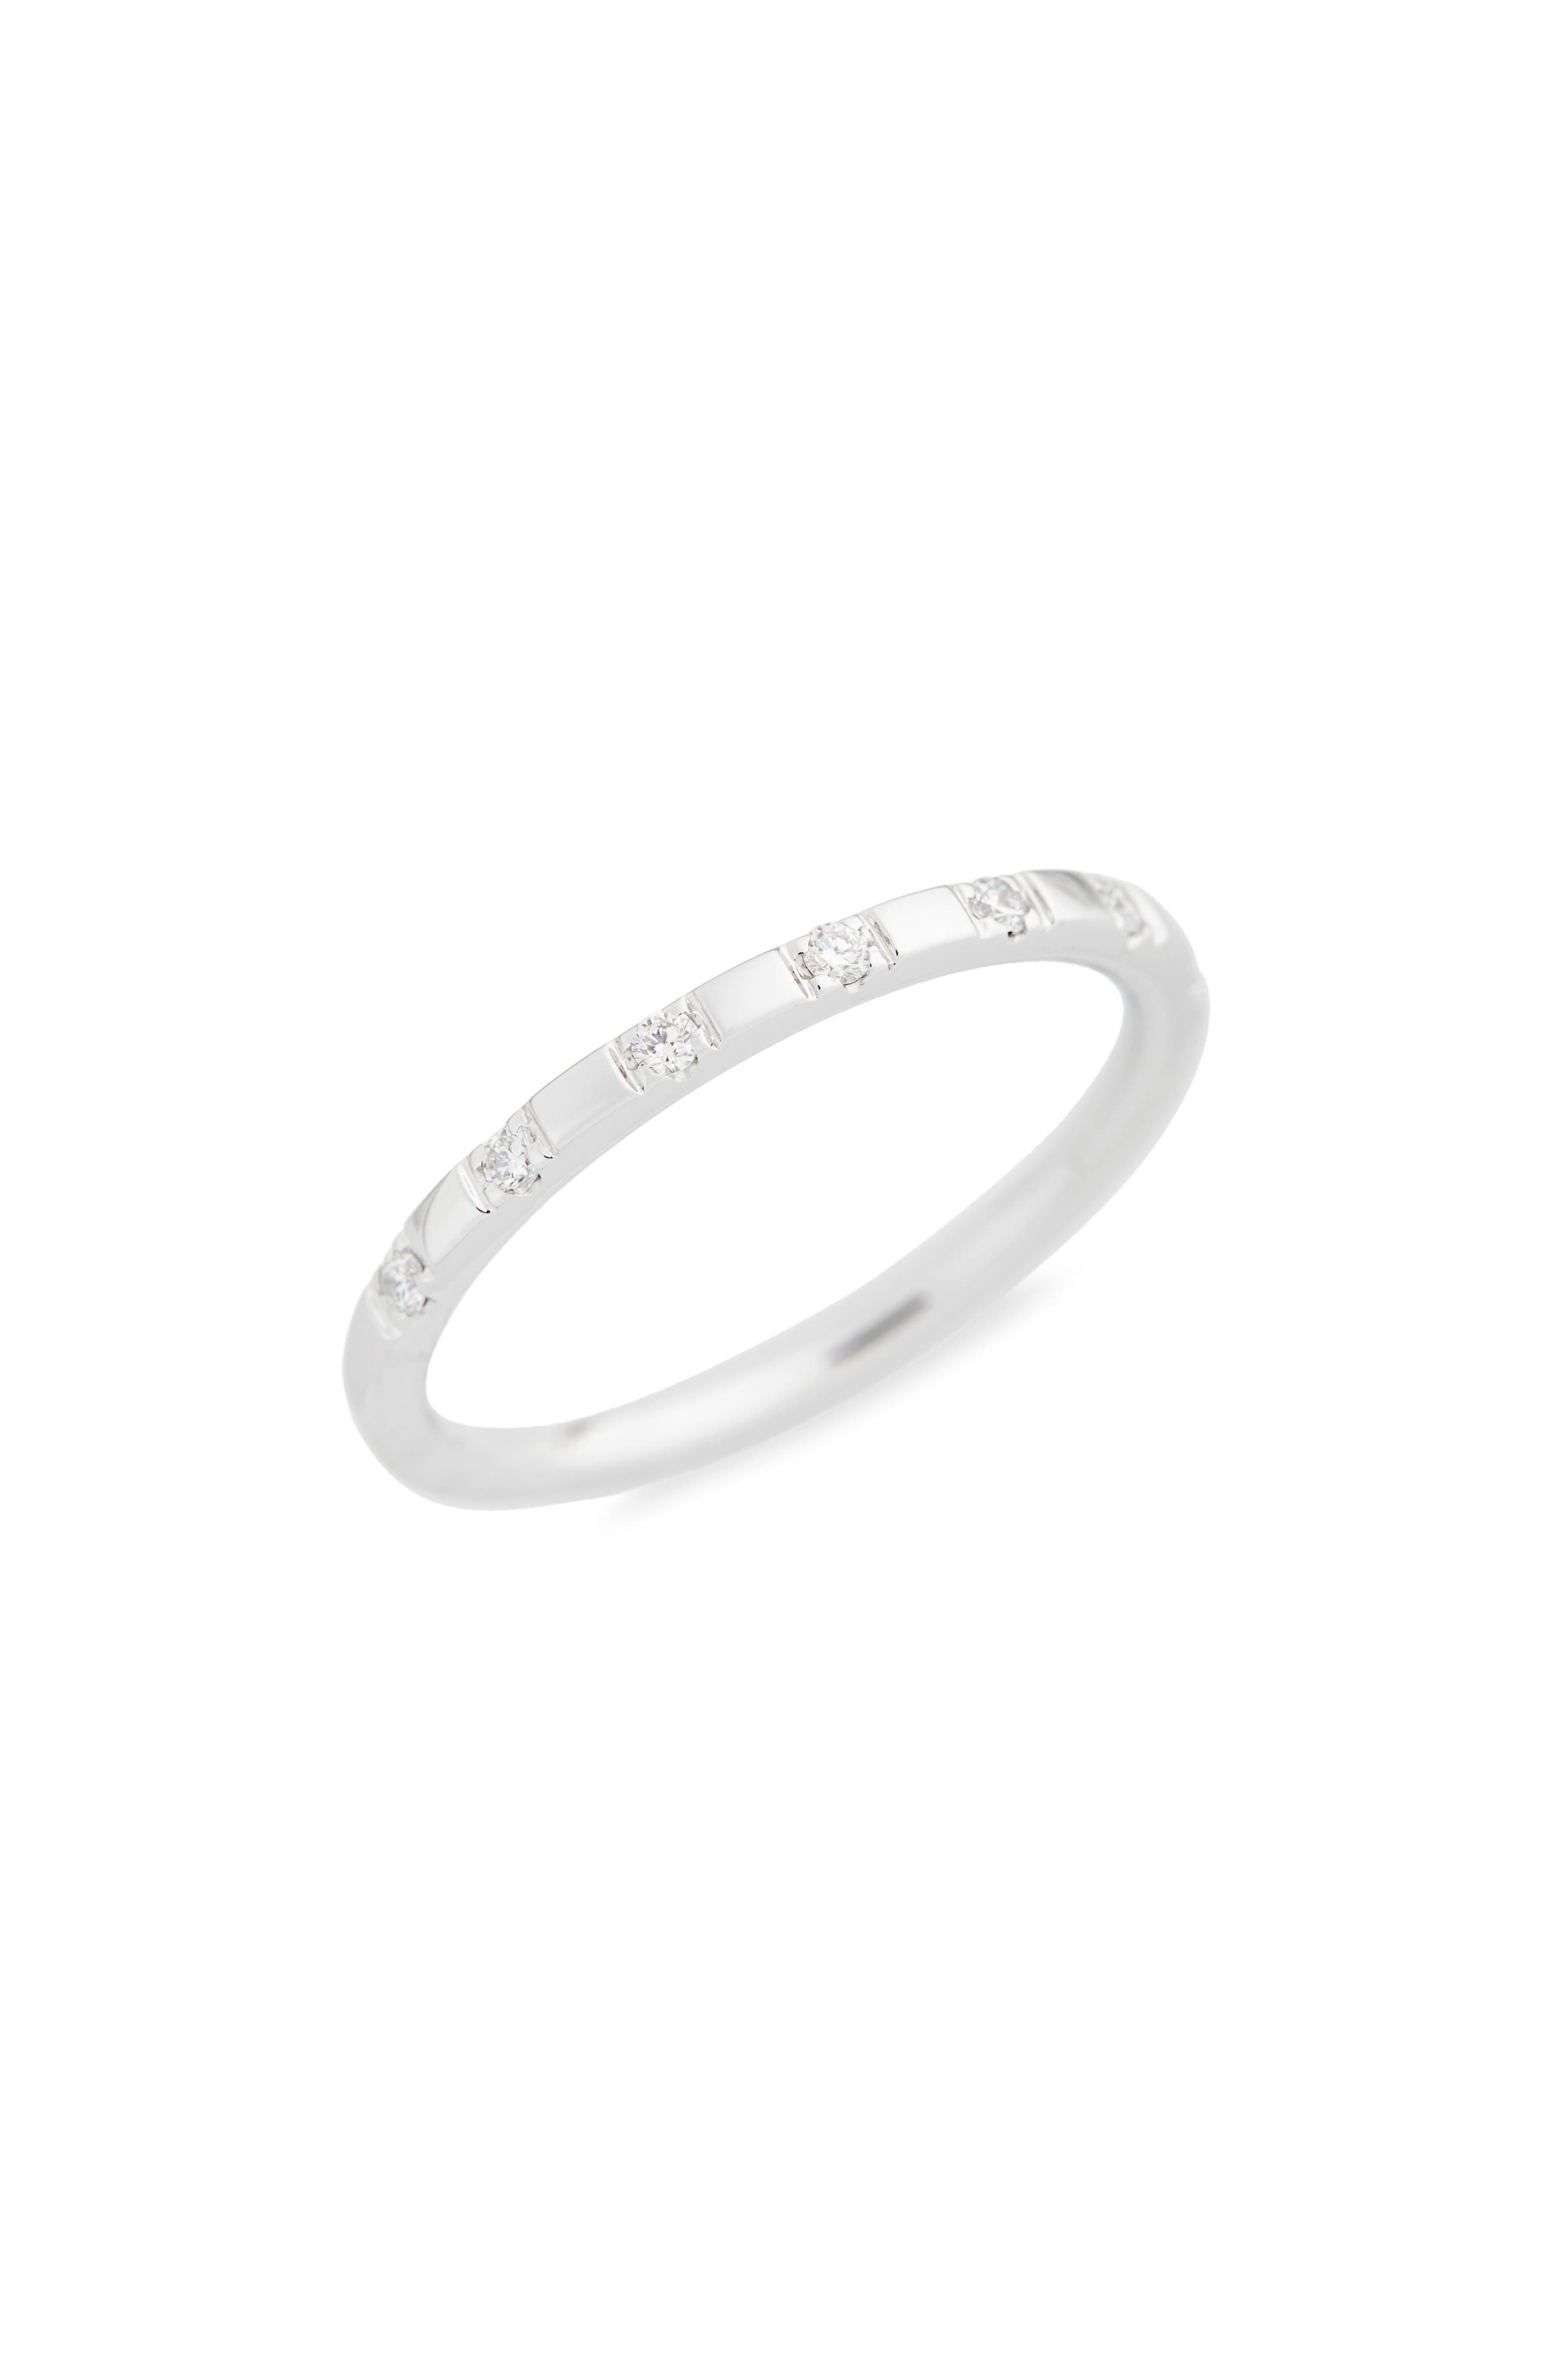 Prism Large Stackable Diamond Ring,                             Main thumbnail 1, color,                             WHITE GOLD